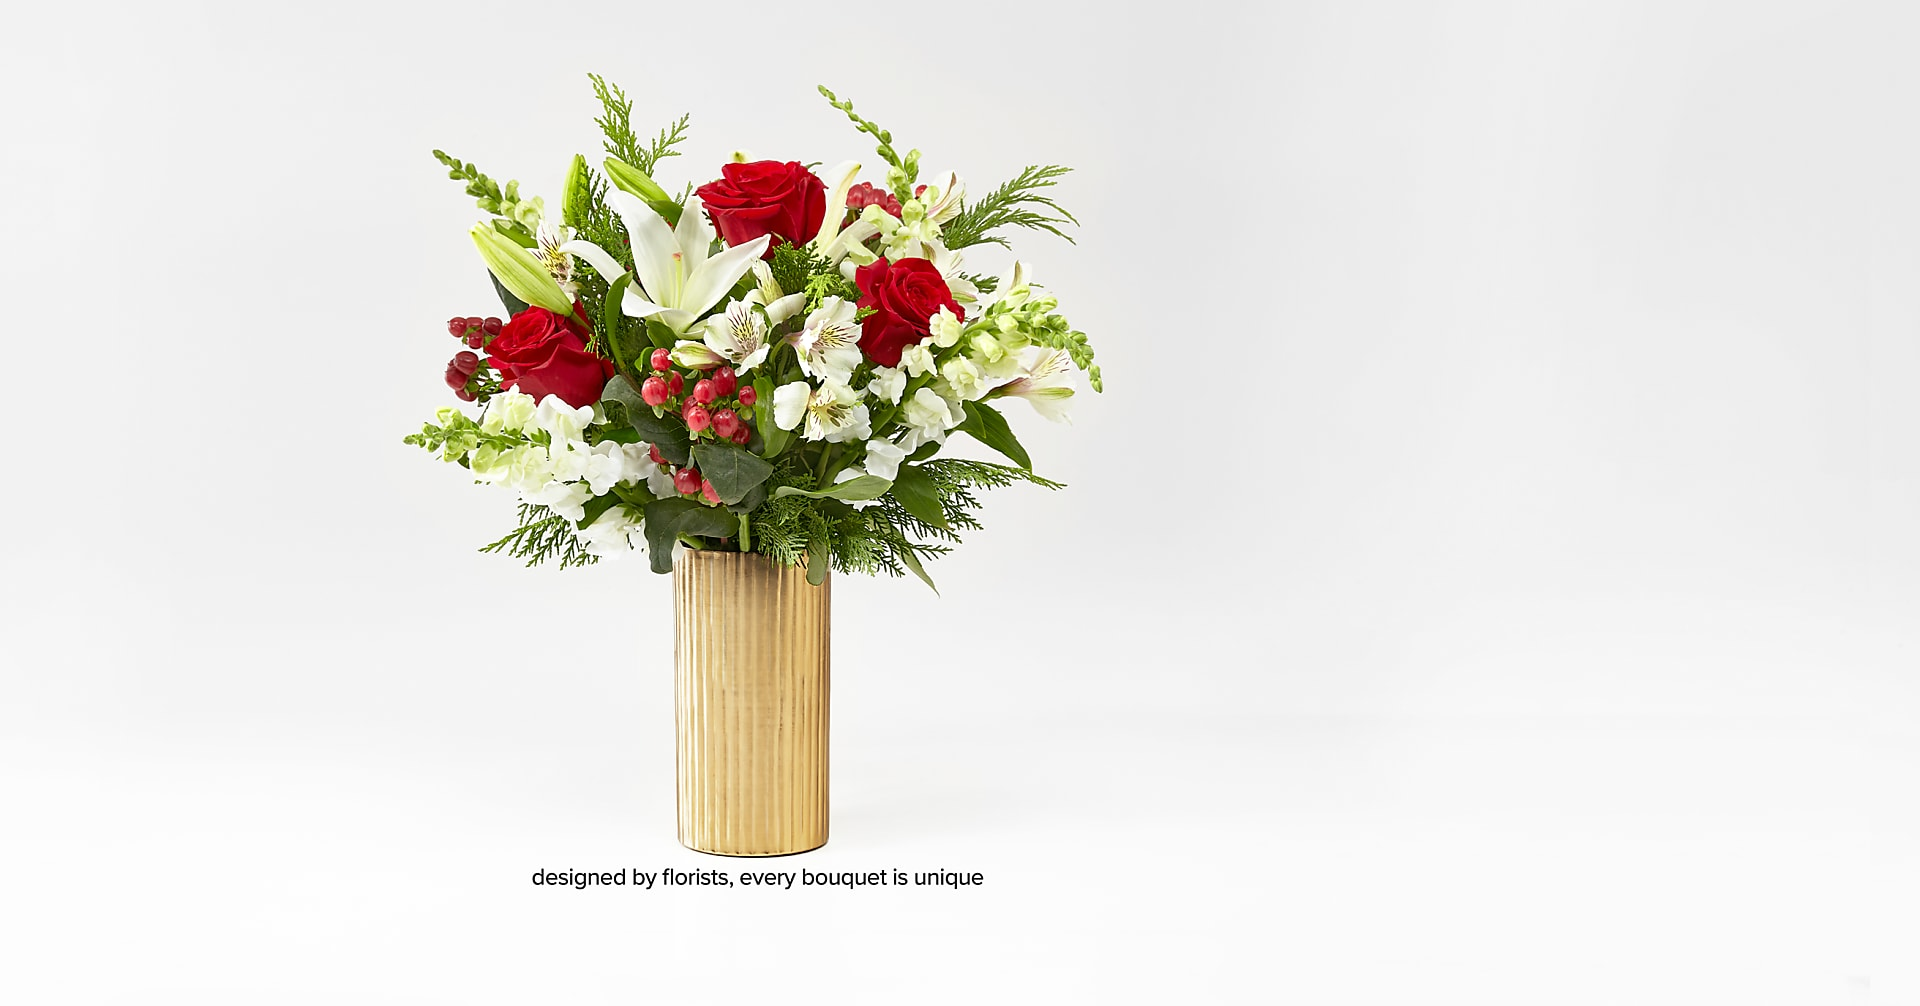 Golden Holiday Bouquet - Image 4 Of 4